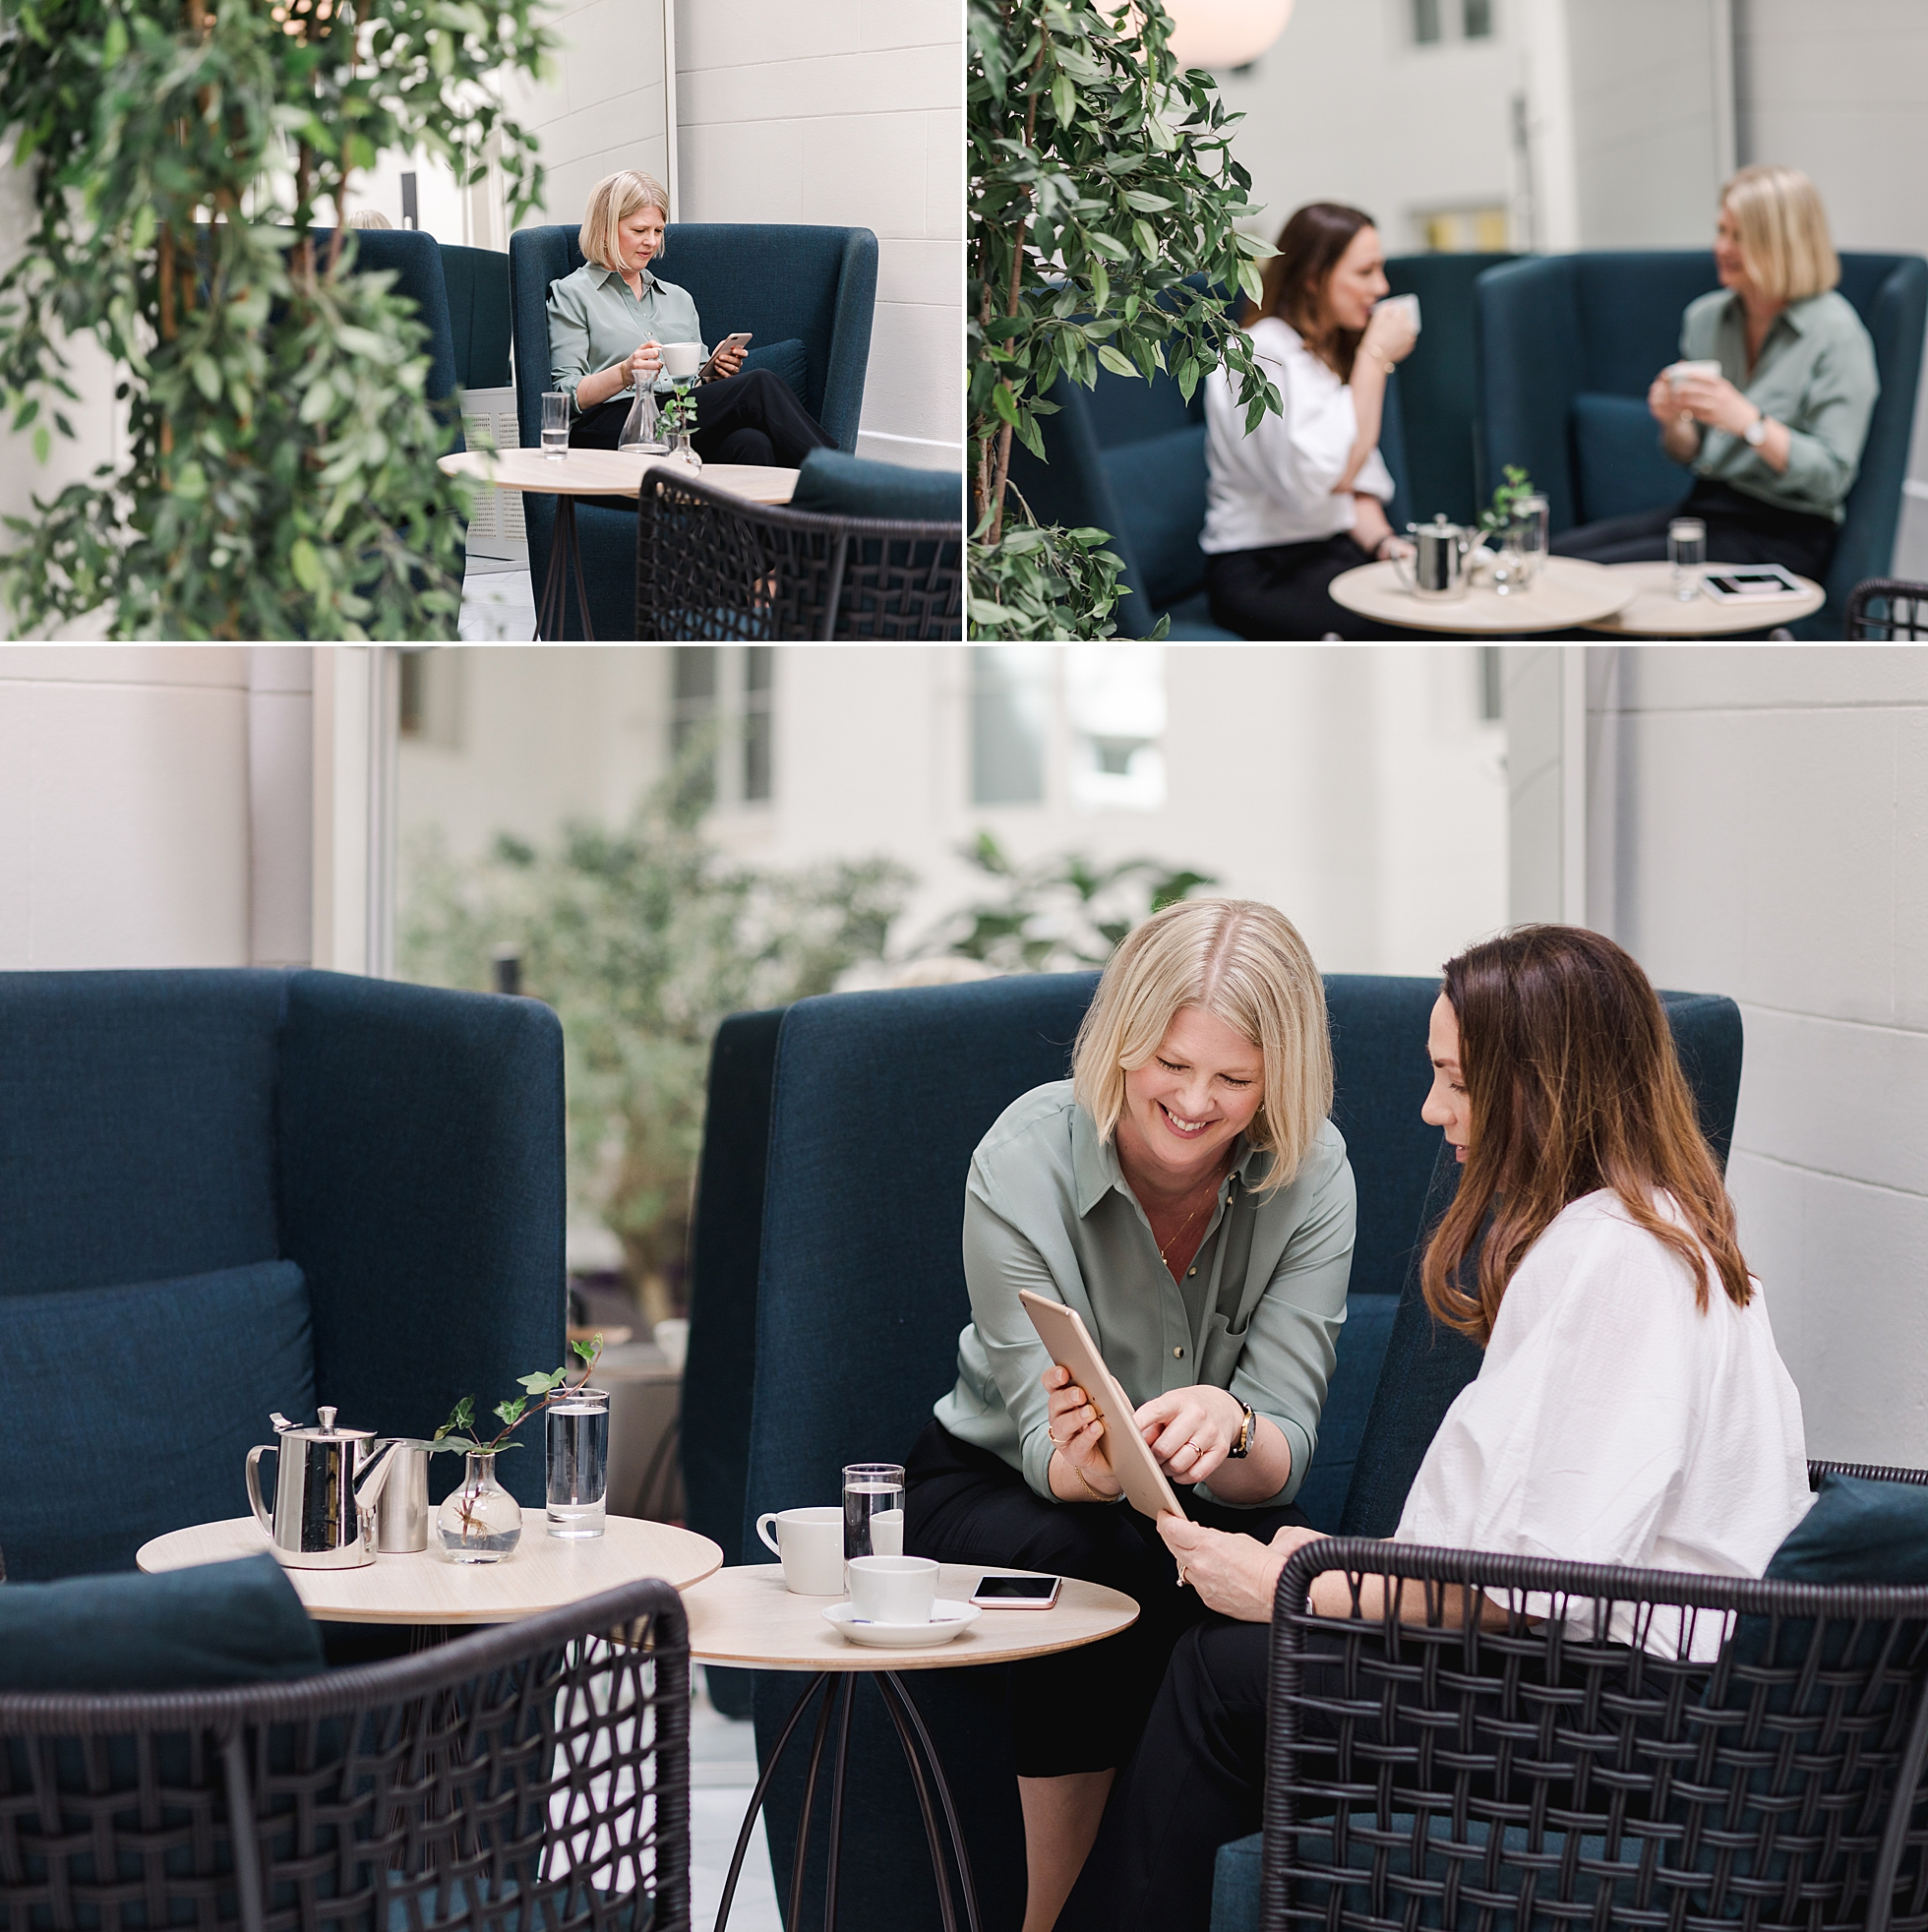 Personal brand photos of Christine Ljungberg in a consultation with a client at Hotel Nobis